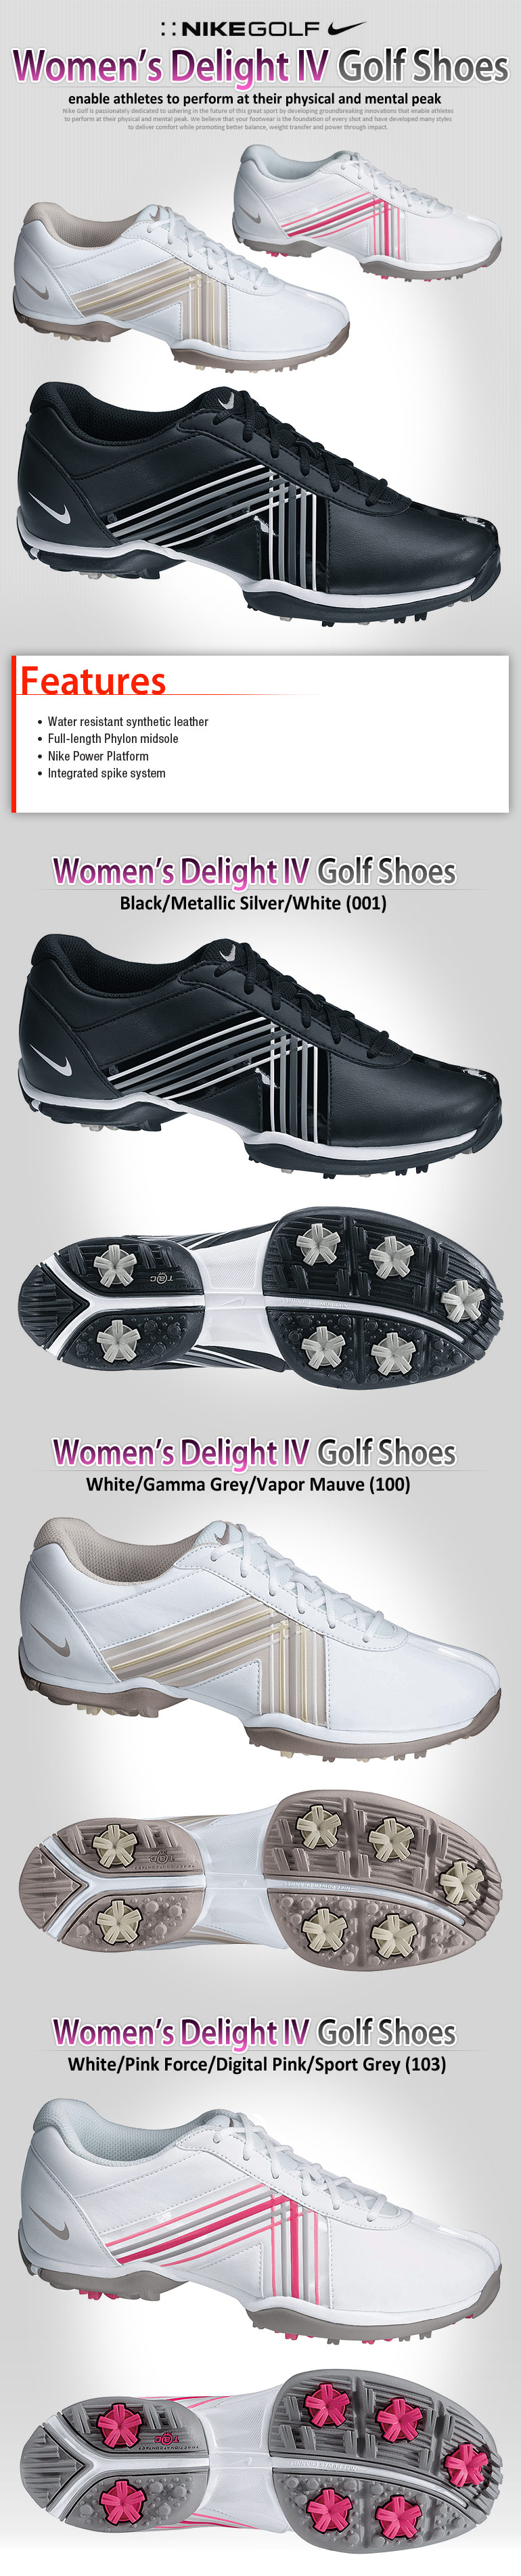 cheap for discount f268d 5baf2 NIKE Delight IV Women s Golf Shoes - Shoes